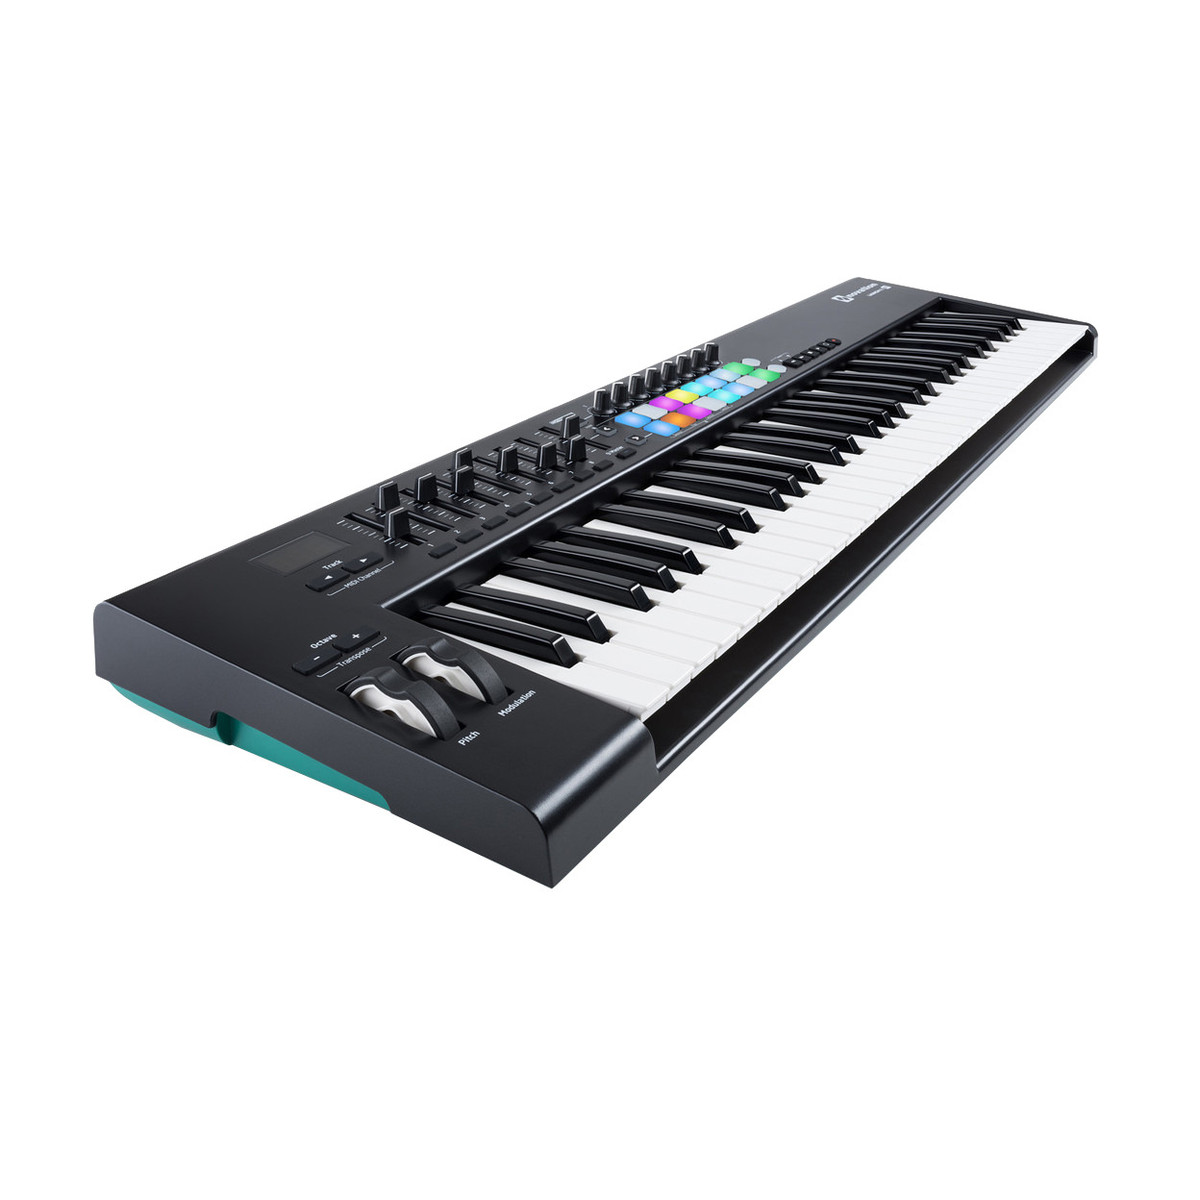 novation launchkey 61 mk2 midi controller keyboard at. Black Bedroom Furniture Sets. Home Design Ideas